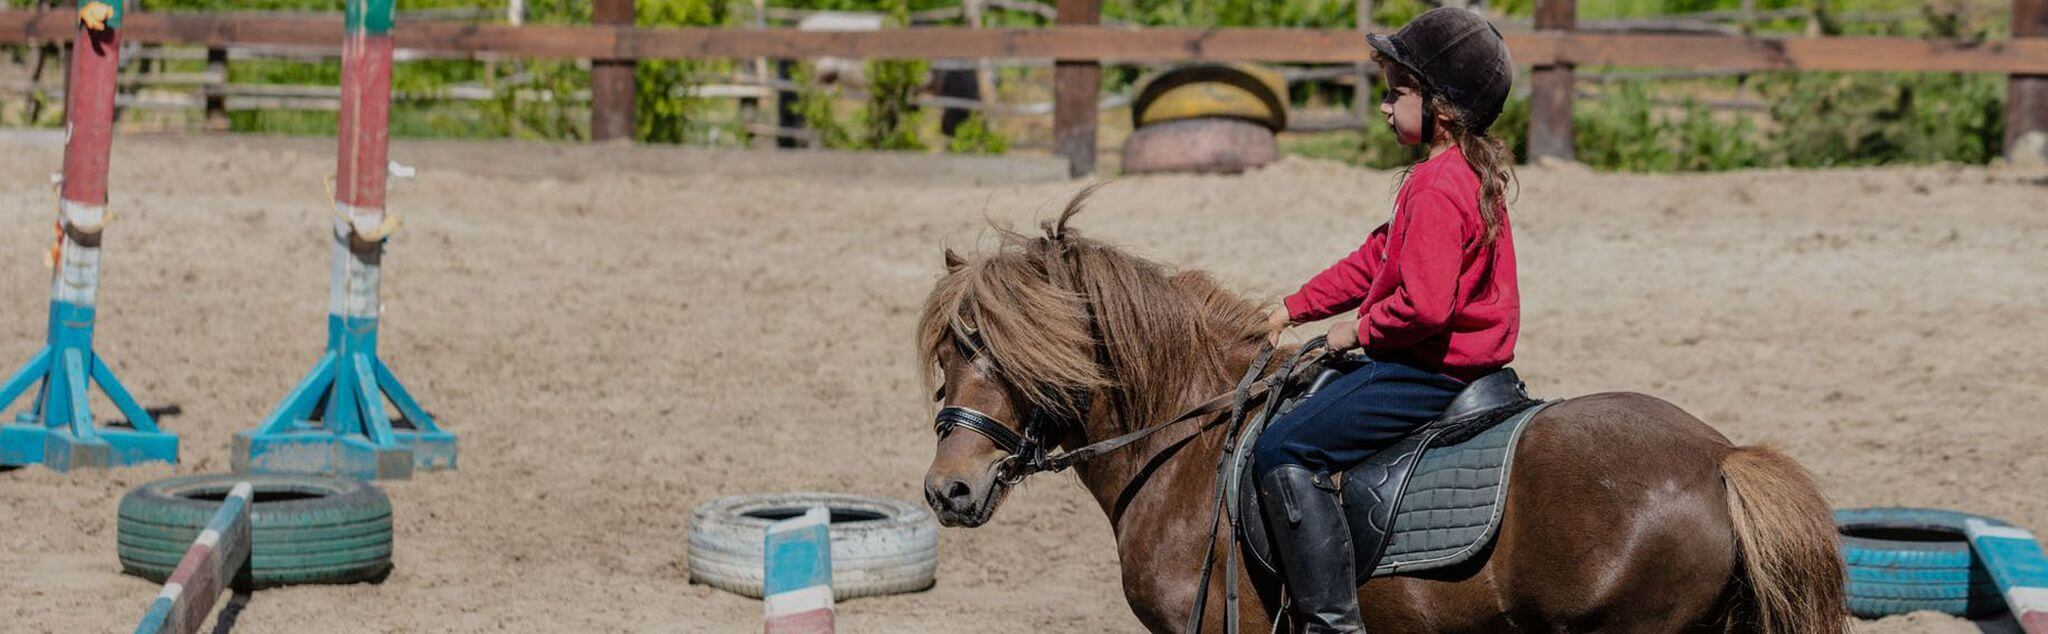 Horse Riding Lessons in Spain